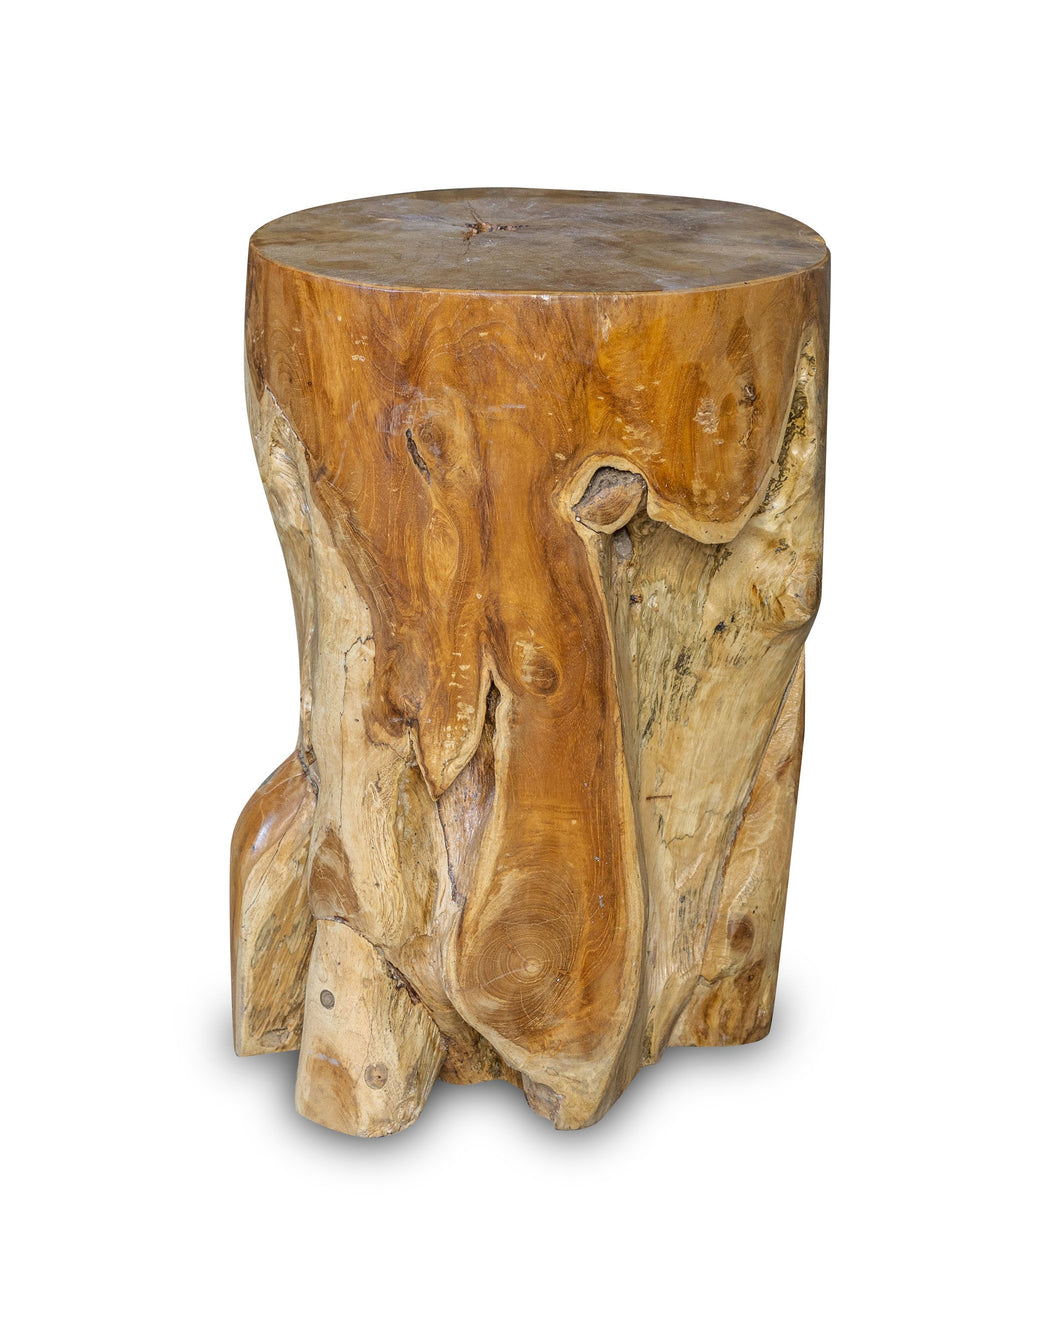 Solid Teak Wood Side Table, Natural Tree Stump Stool or End Table #13    17.5